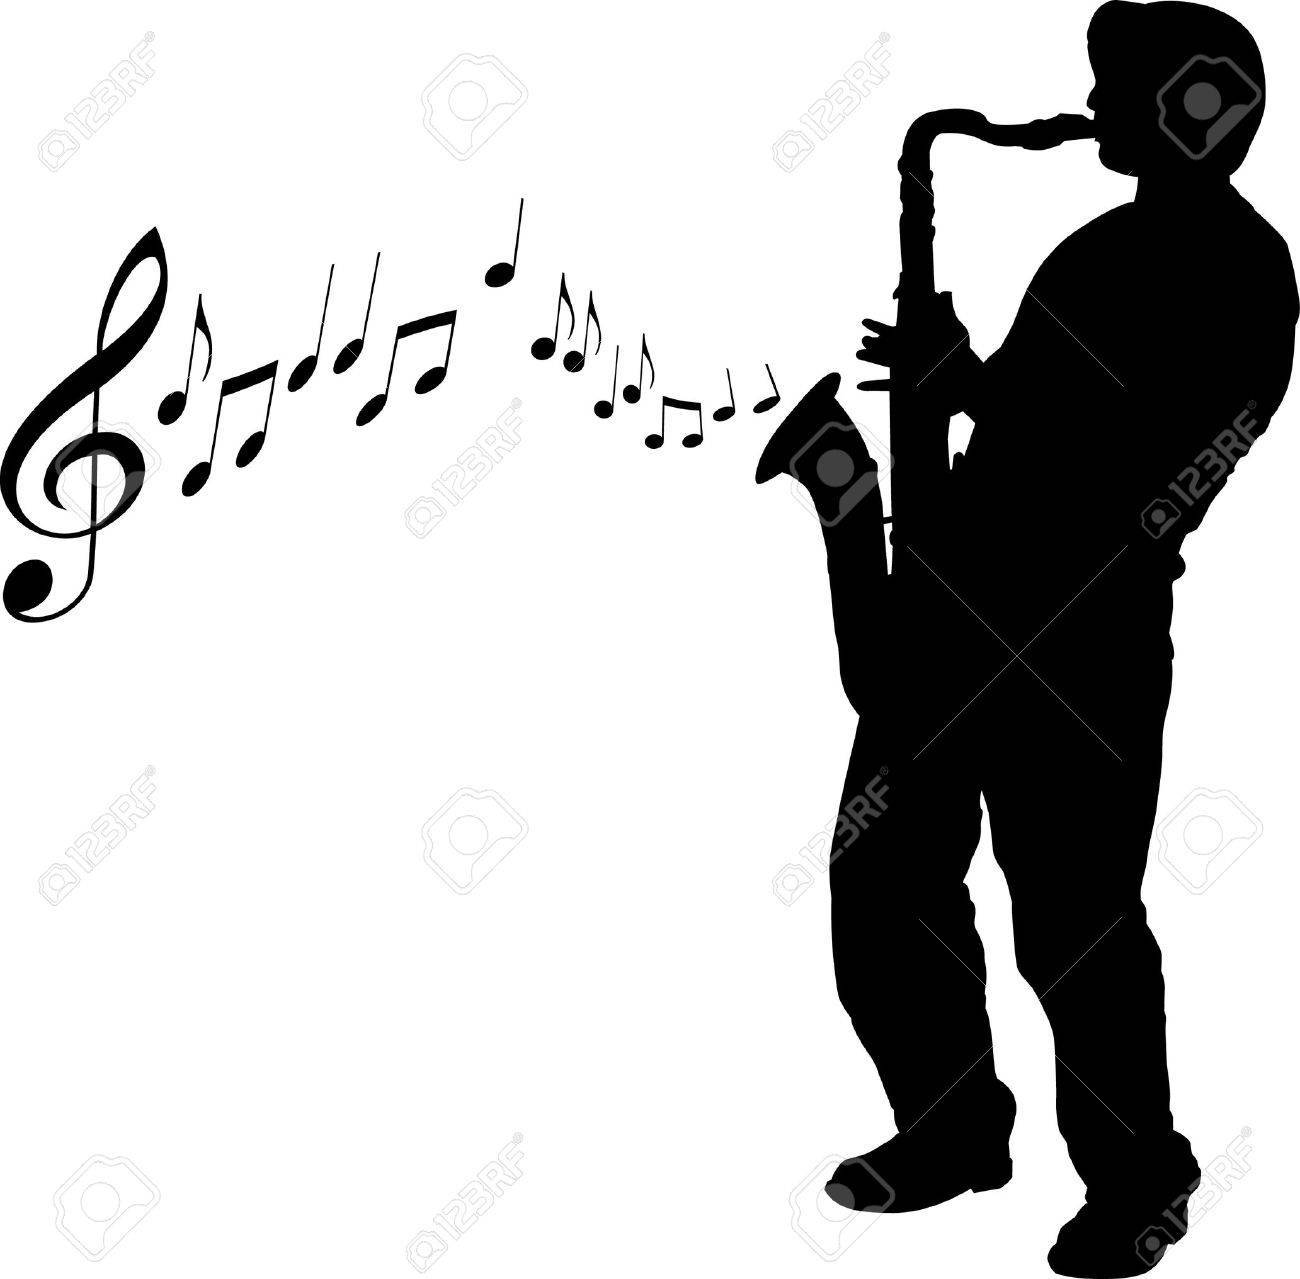 Sax player clipart image royalty free stock Sax player clipart 1 » Clipart Portal image royalty free stock